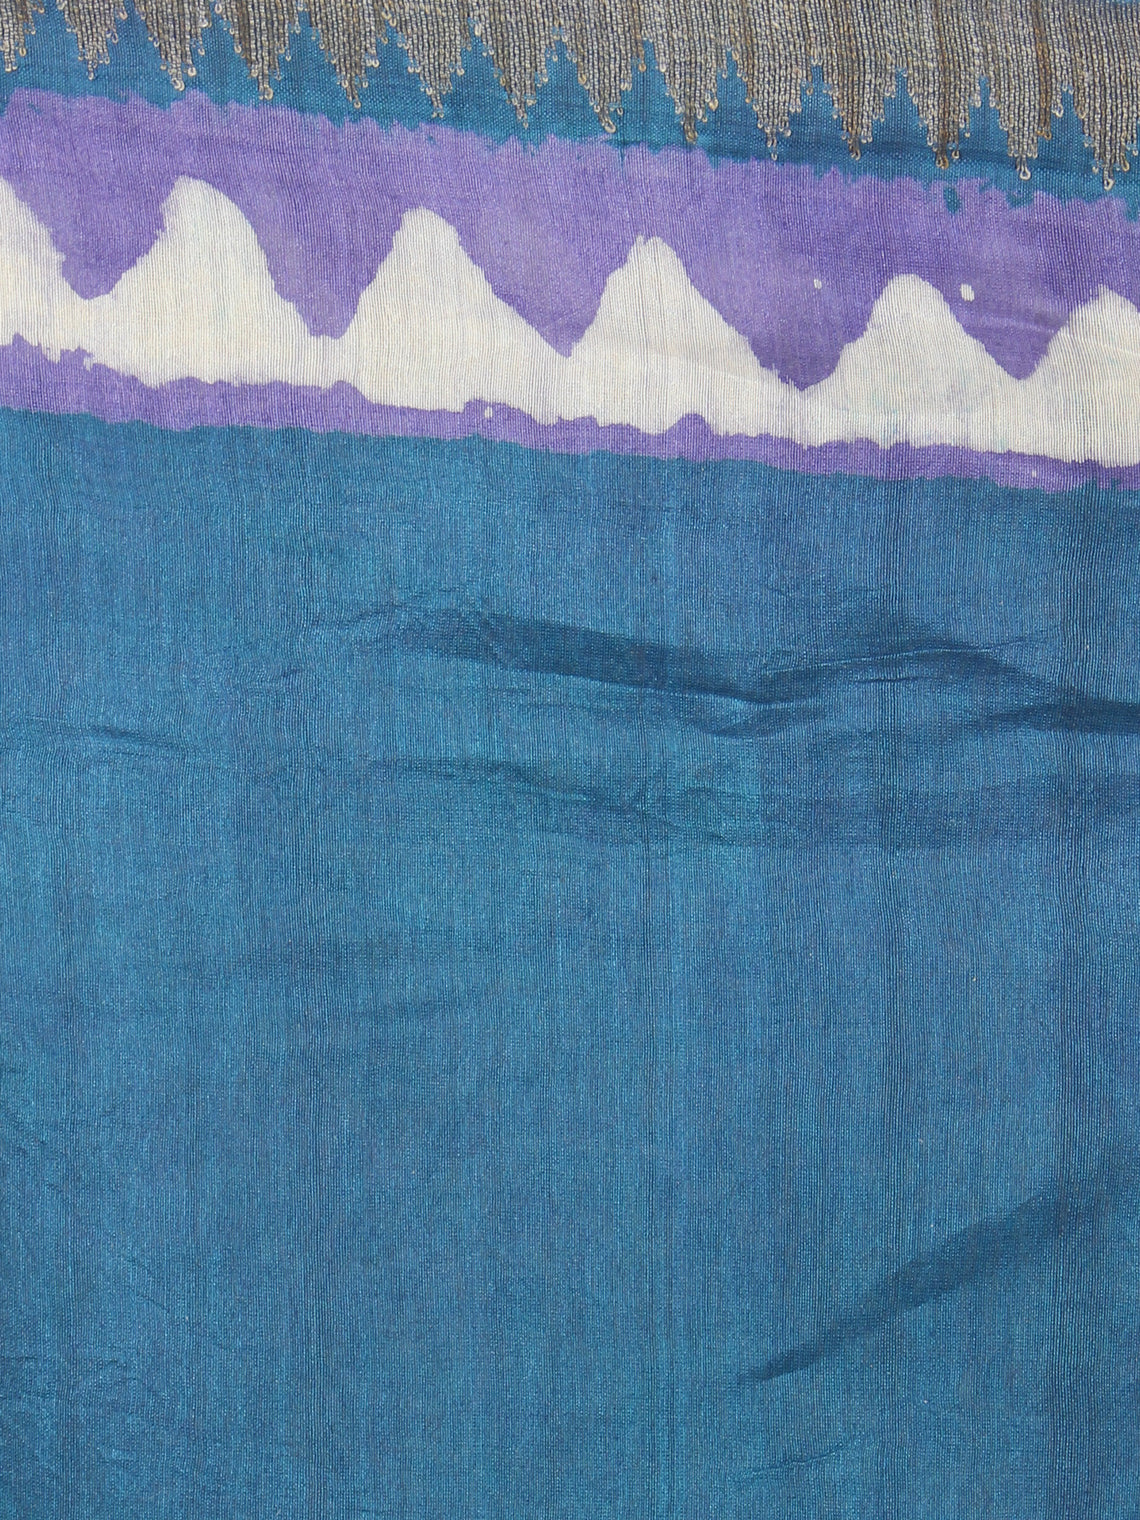 Fern Green Purple Hand Block Printed in Natural Colors Chanderi Saree With Geecha Border - S03170966